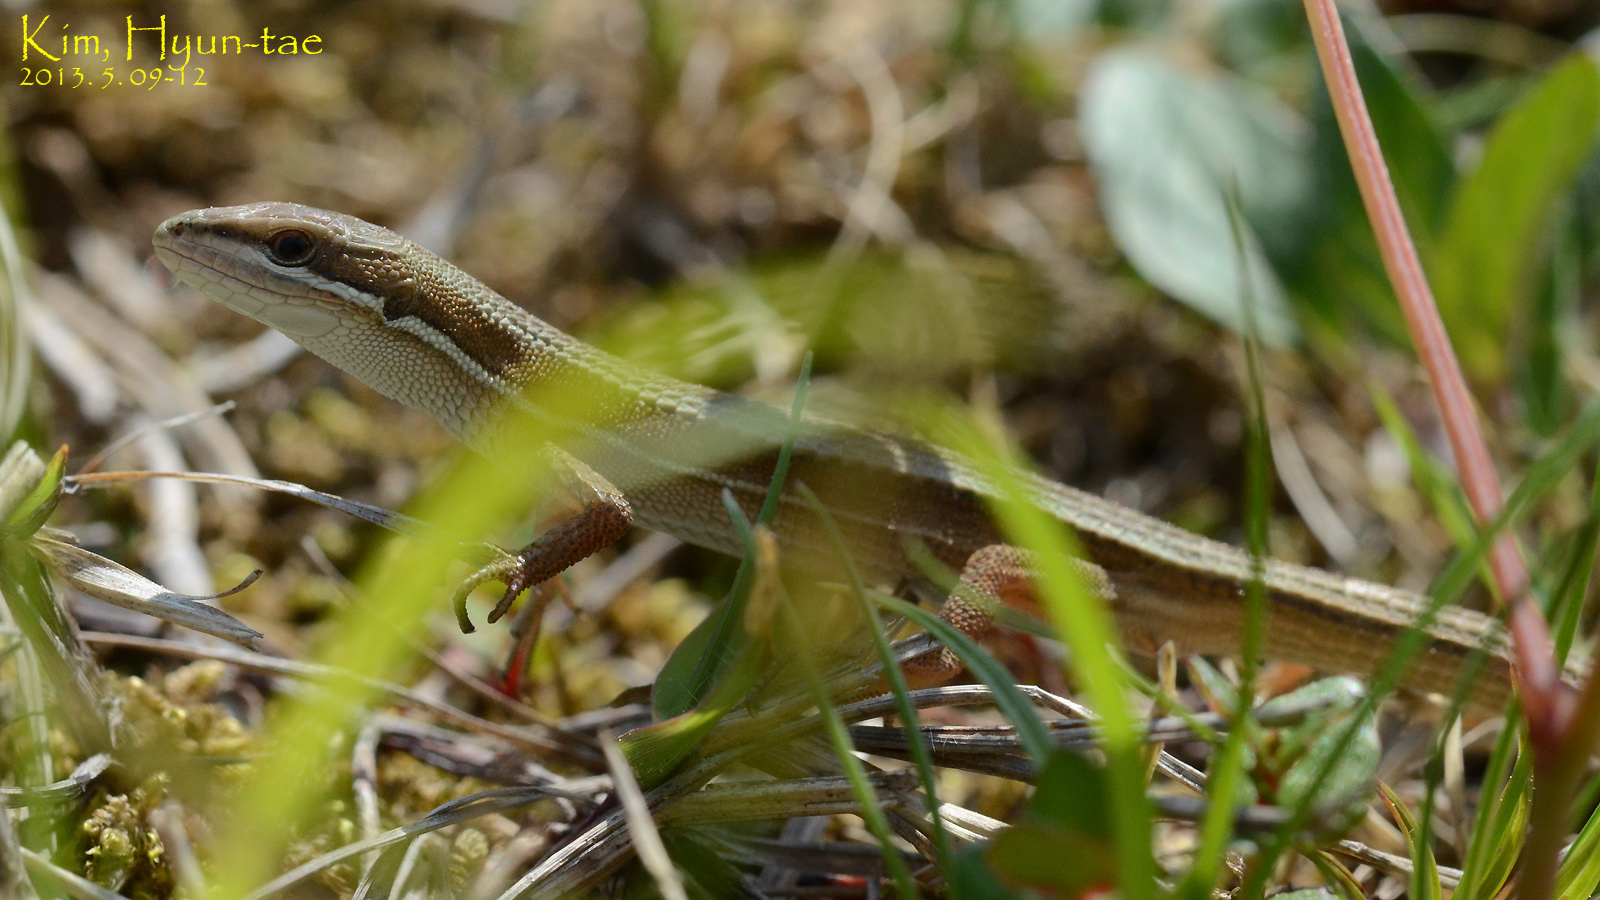 Image of Mountain grass lizard